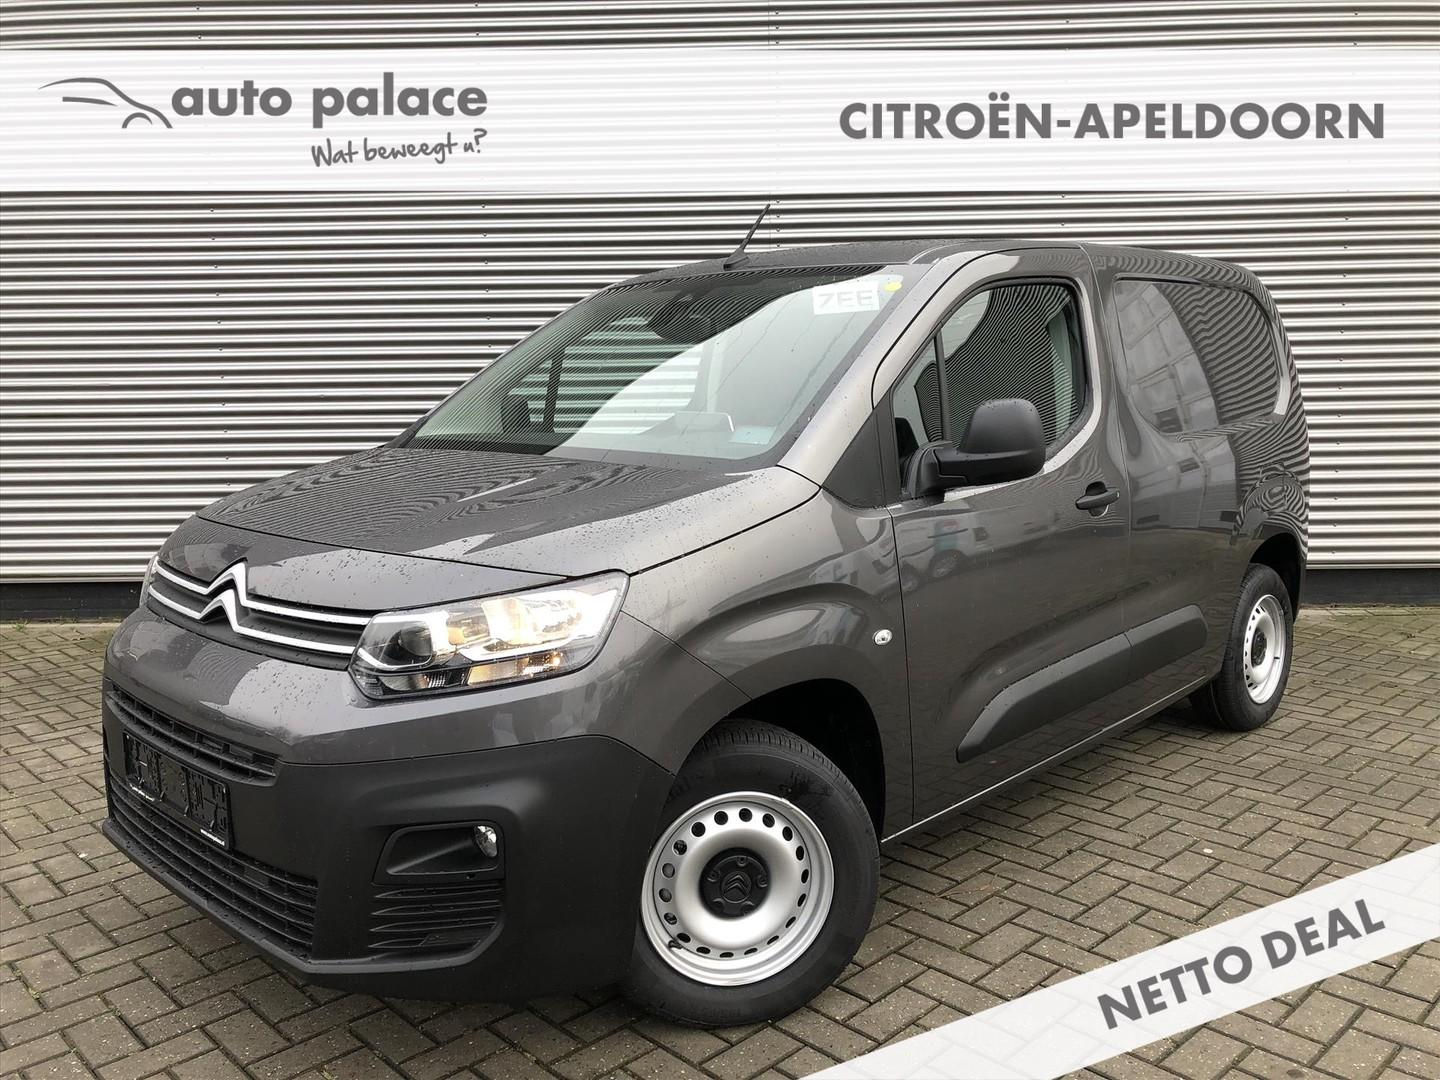 Citroën Berlingo 1.6 hdi 75 pk club